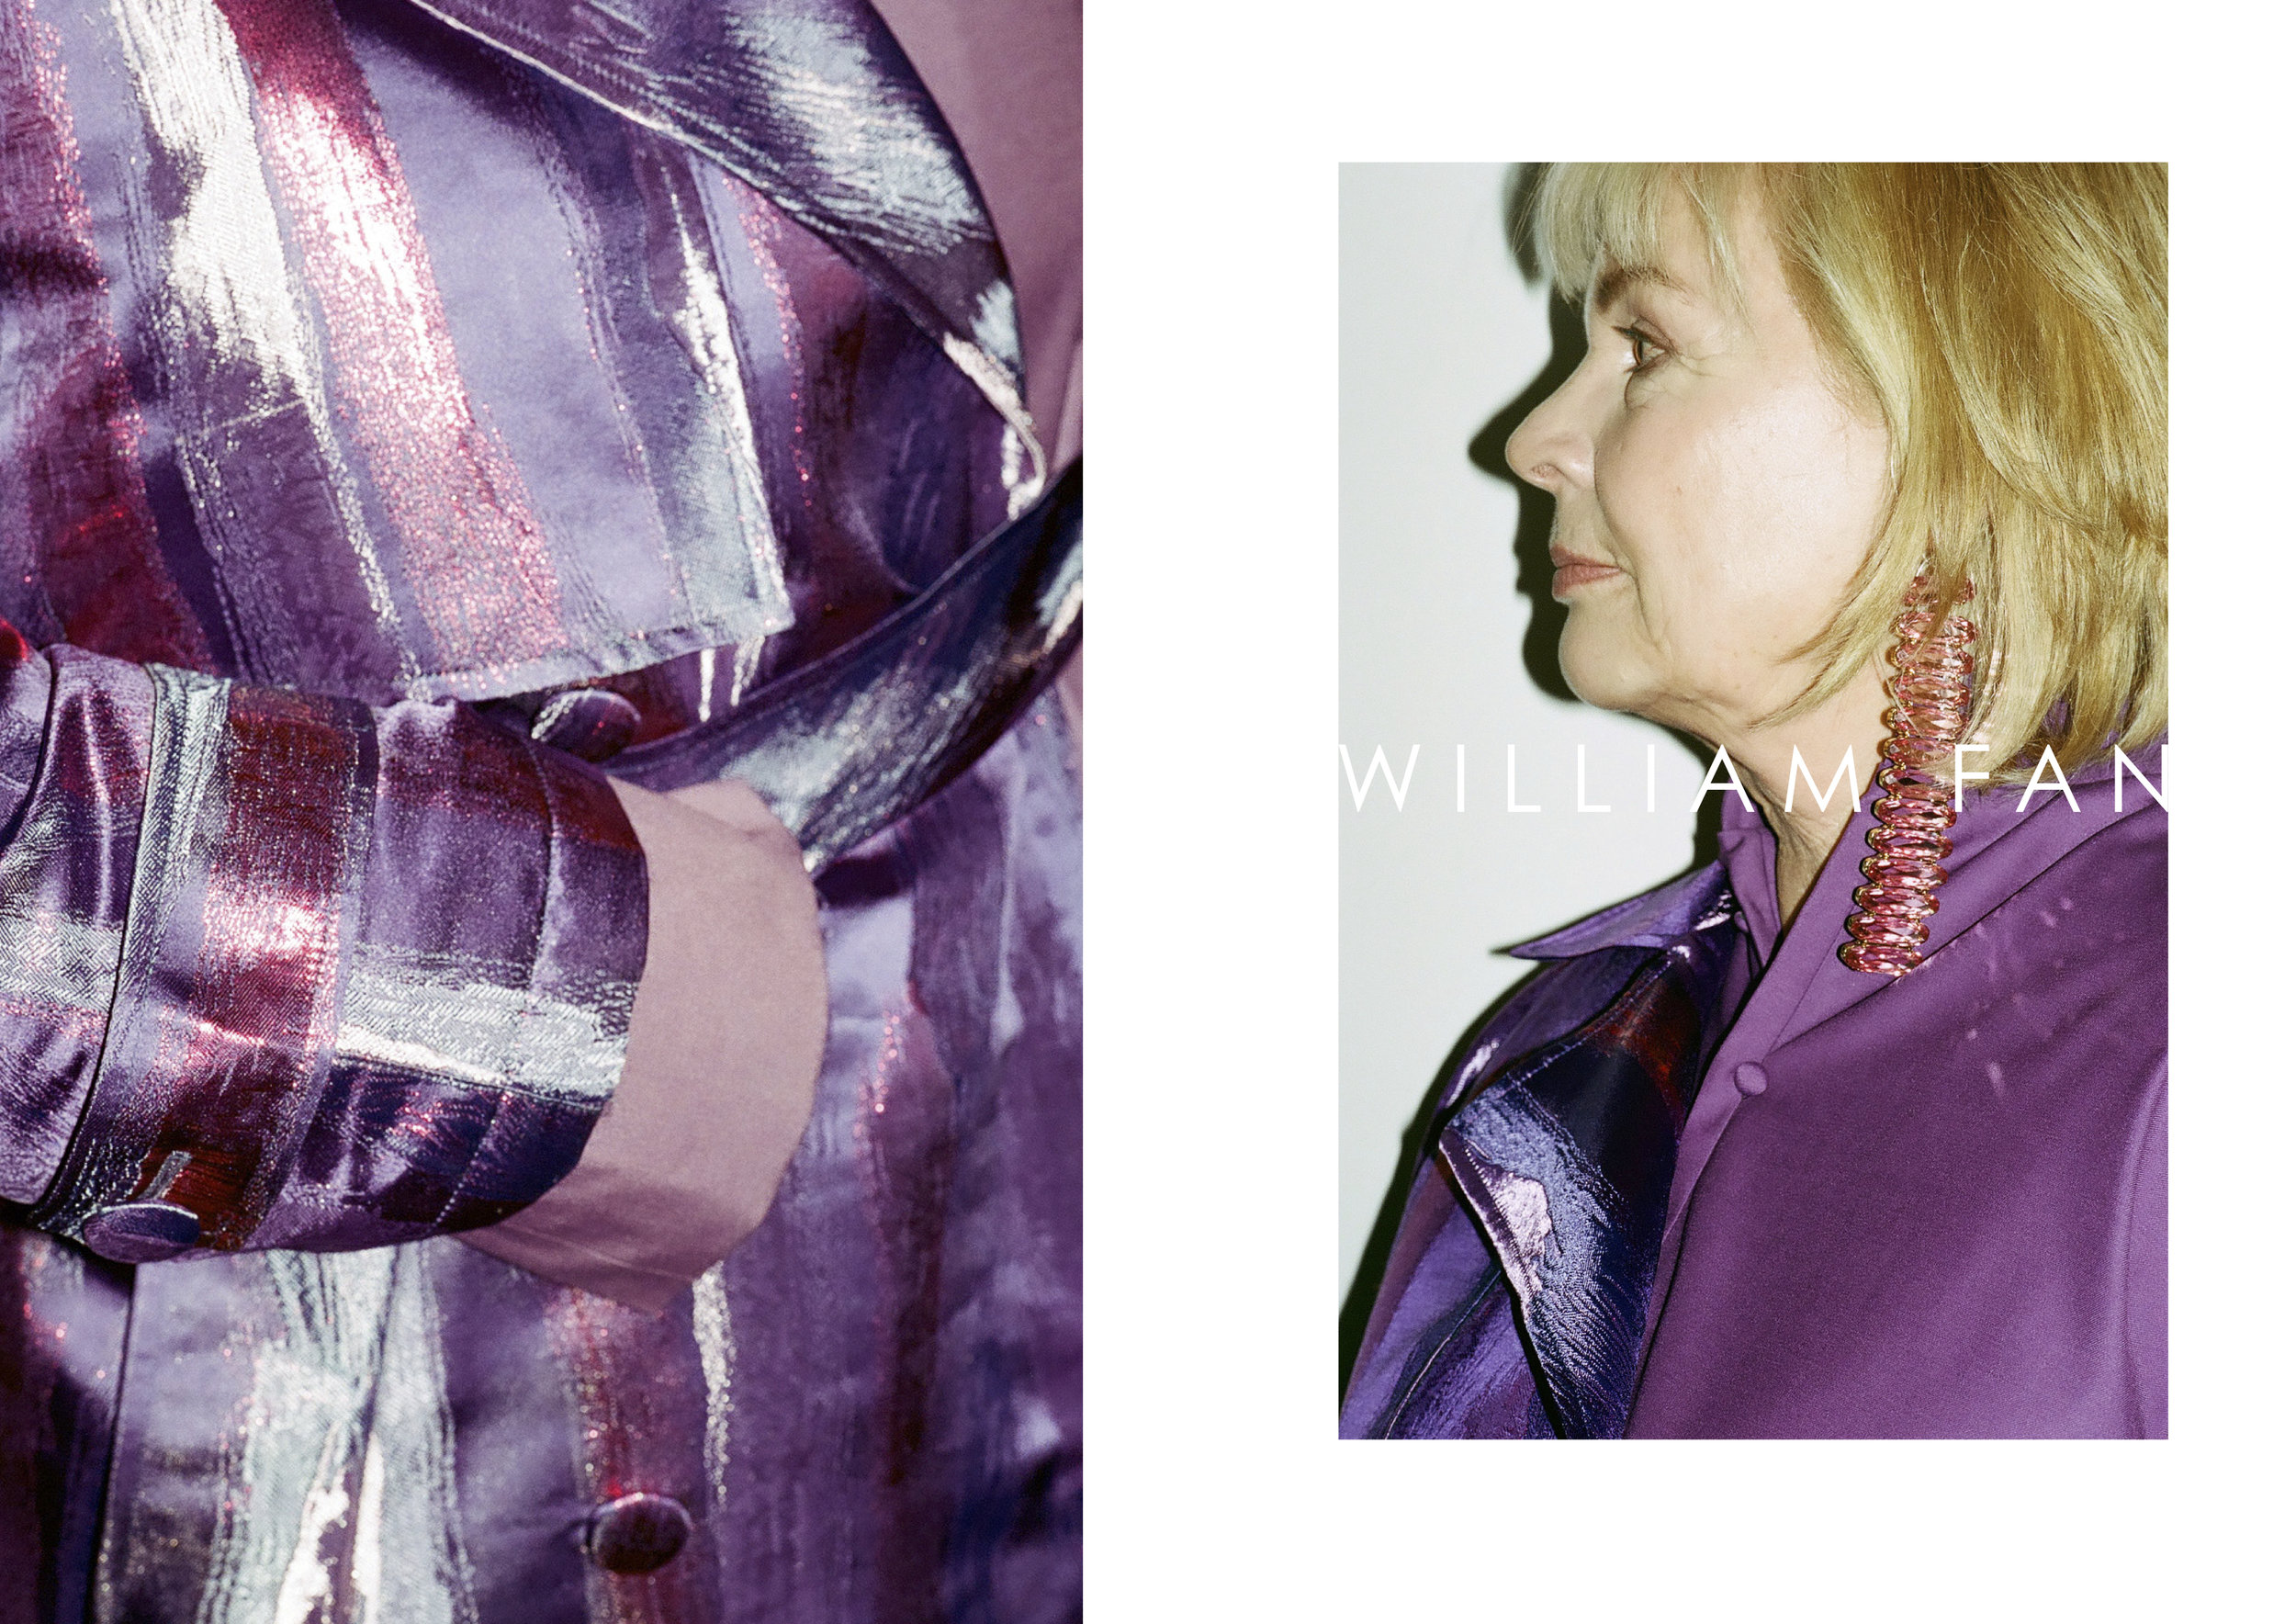 AW 18_19 CAMPAIGN INDESIGN 9.jpg